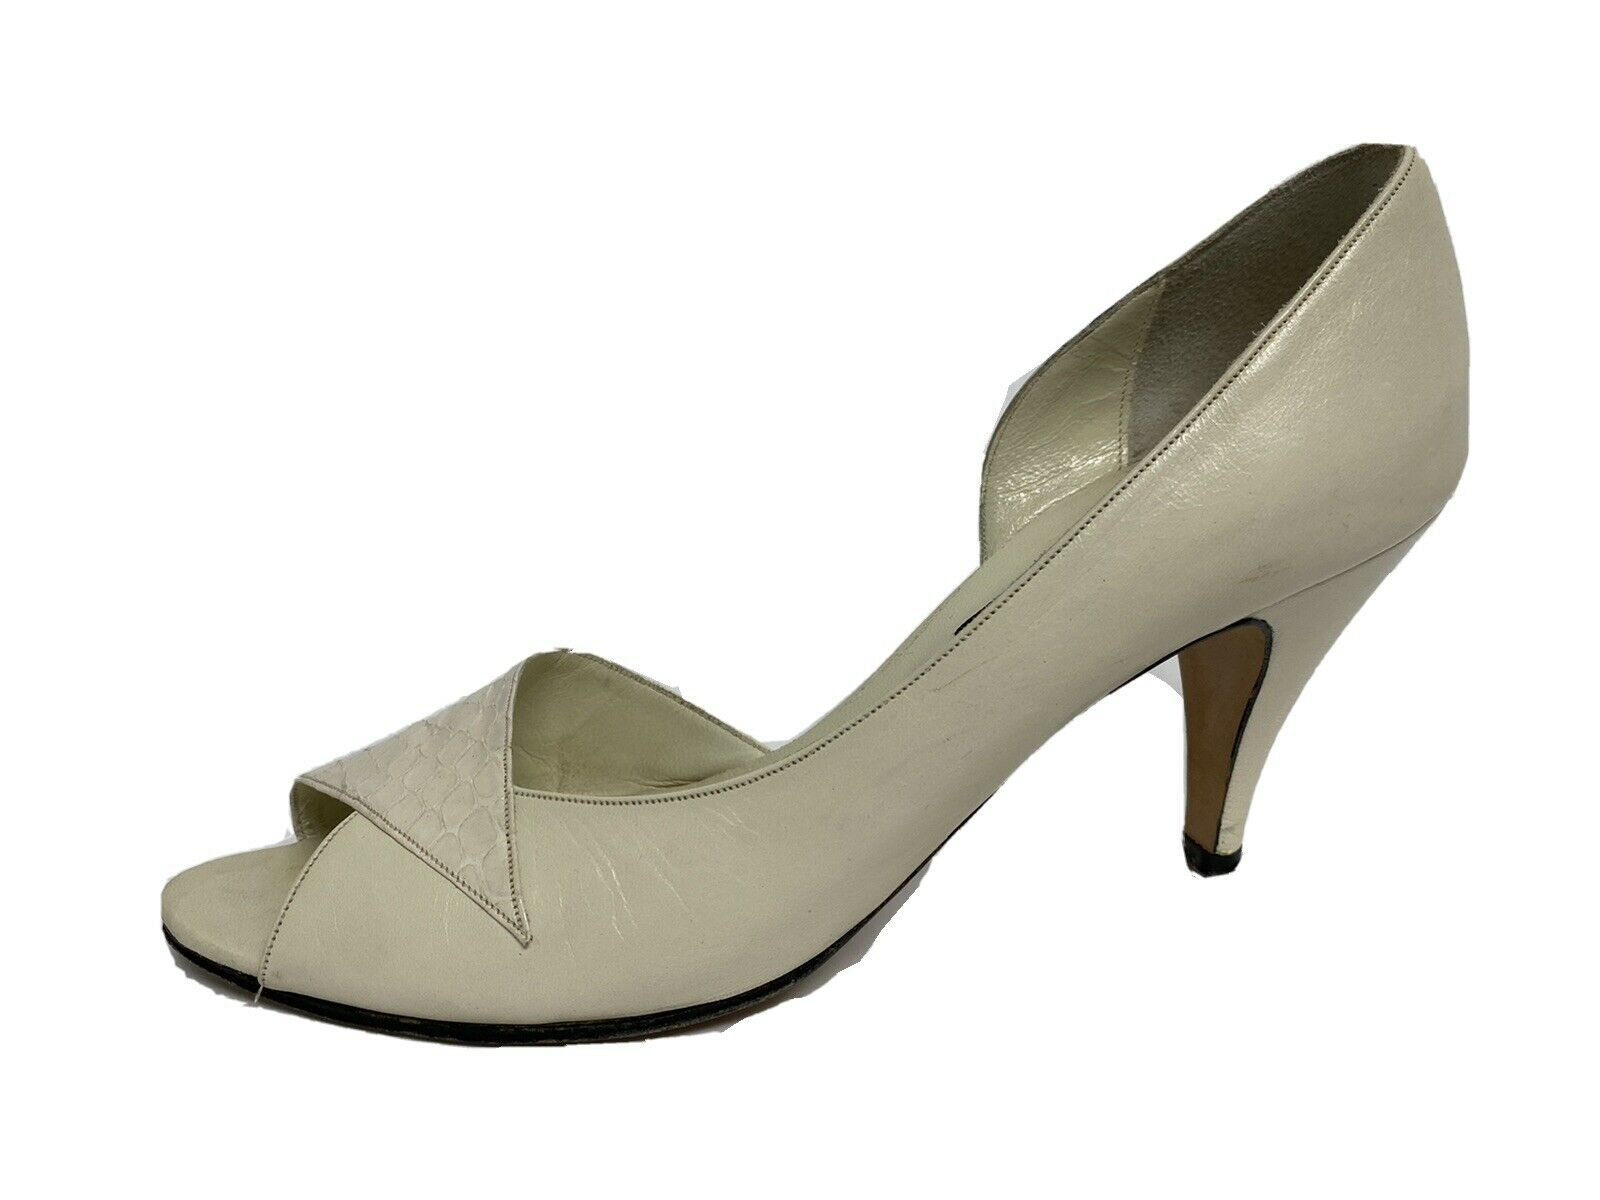 Anne Klein women's shoes vintage heels leather open toe made in Italy size 8N